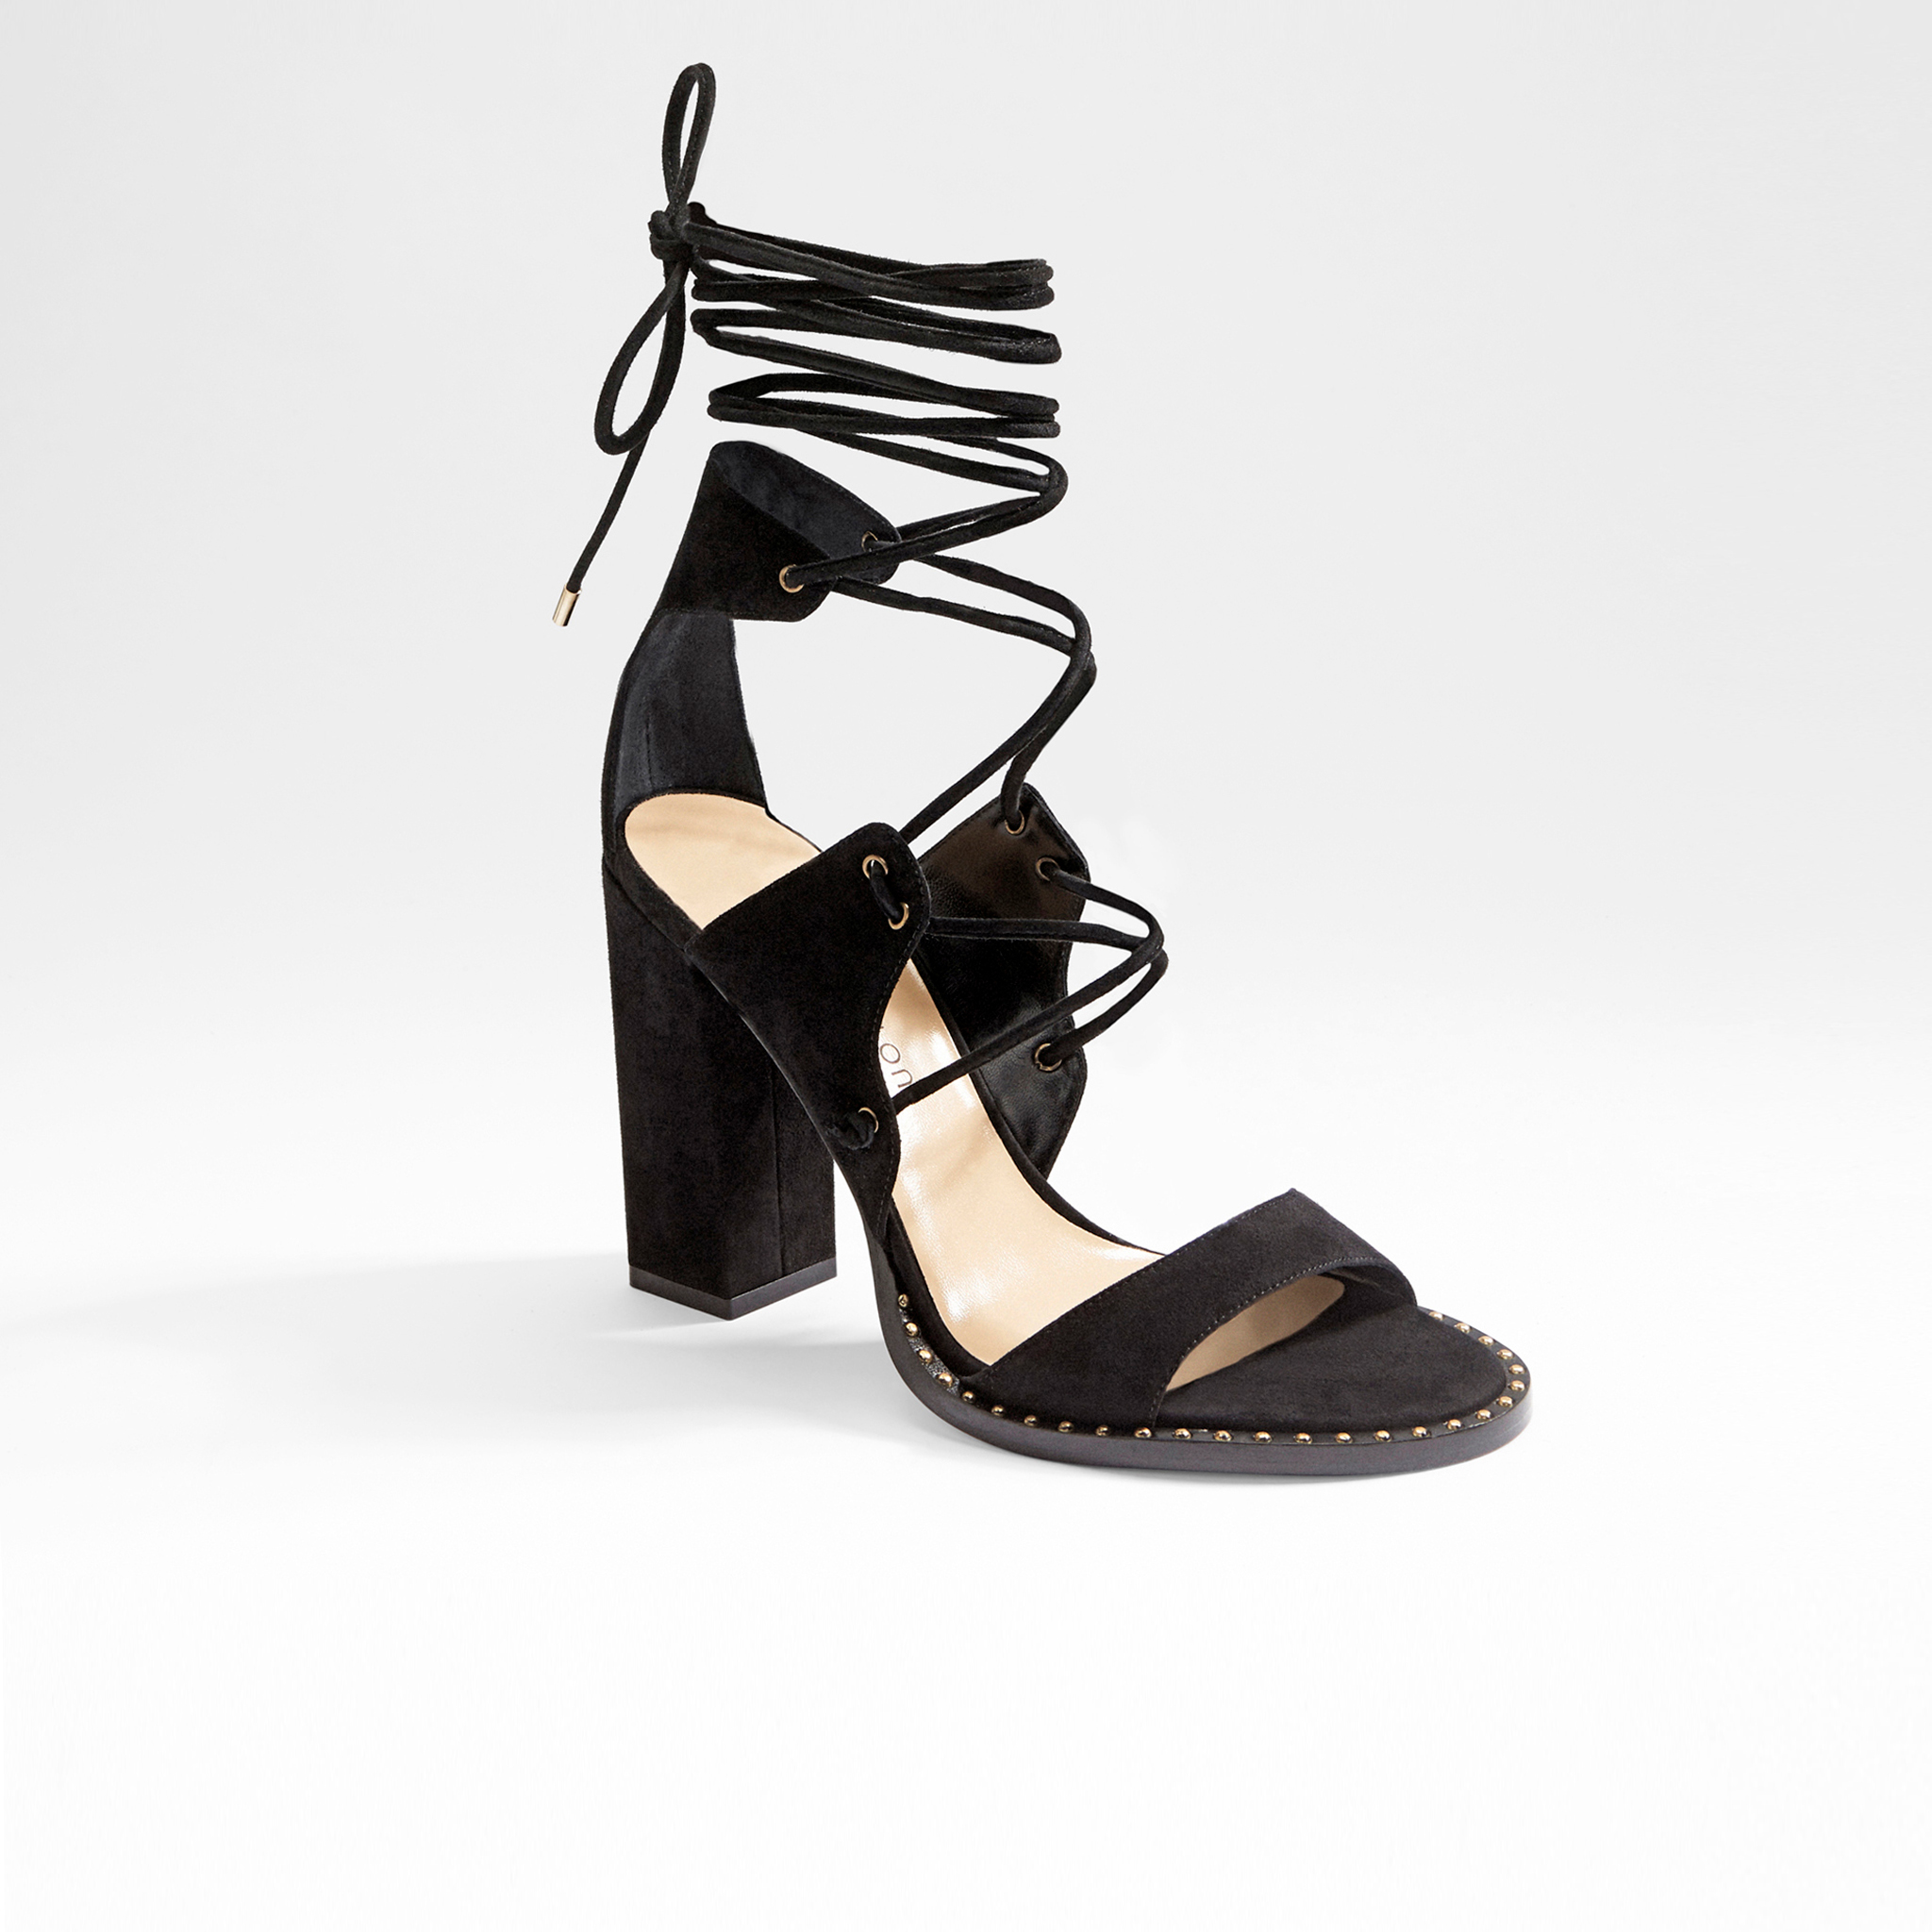 The Dare Sandal